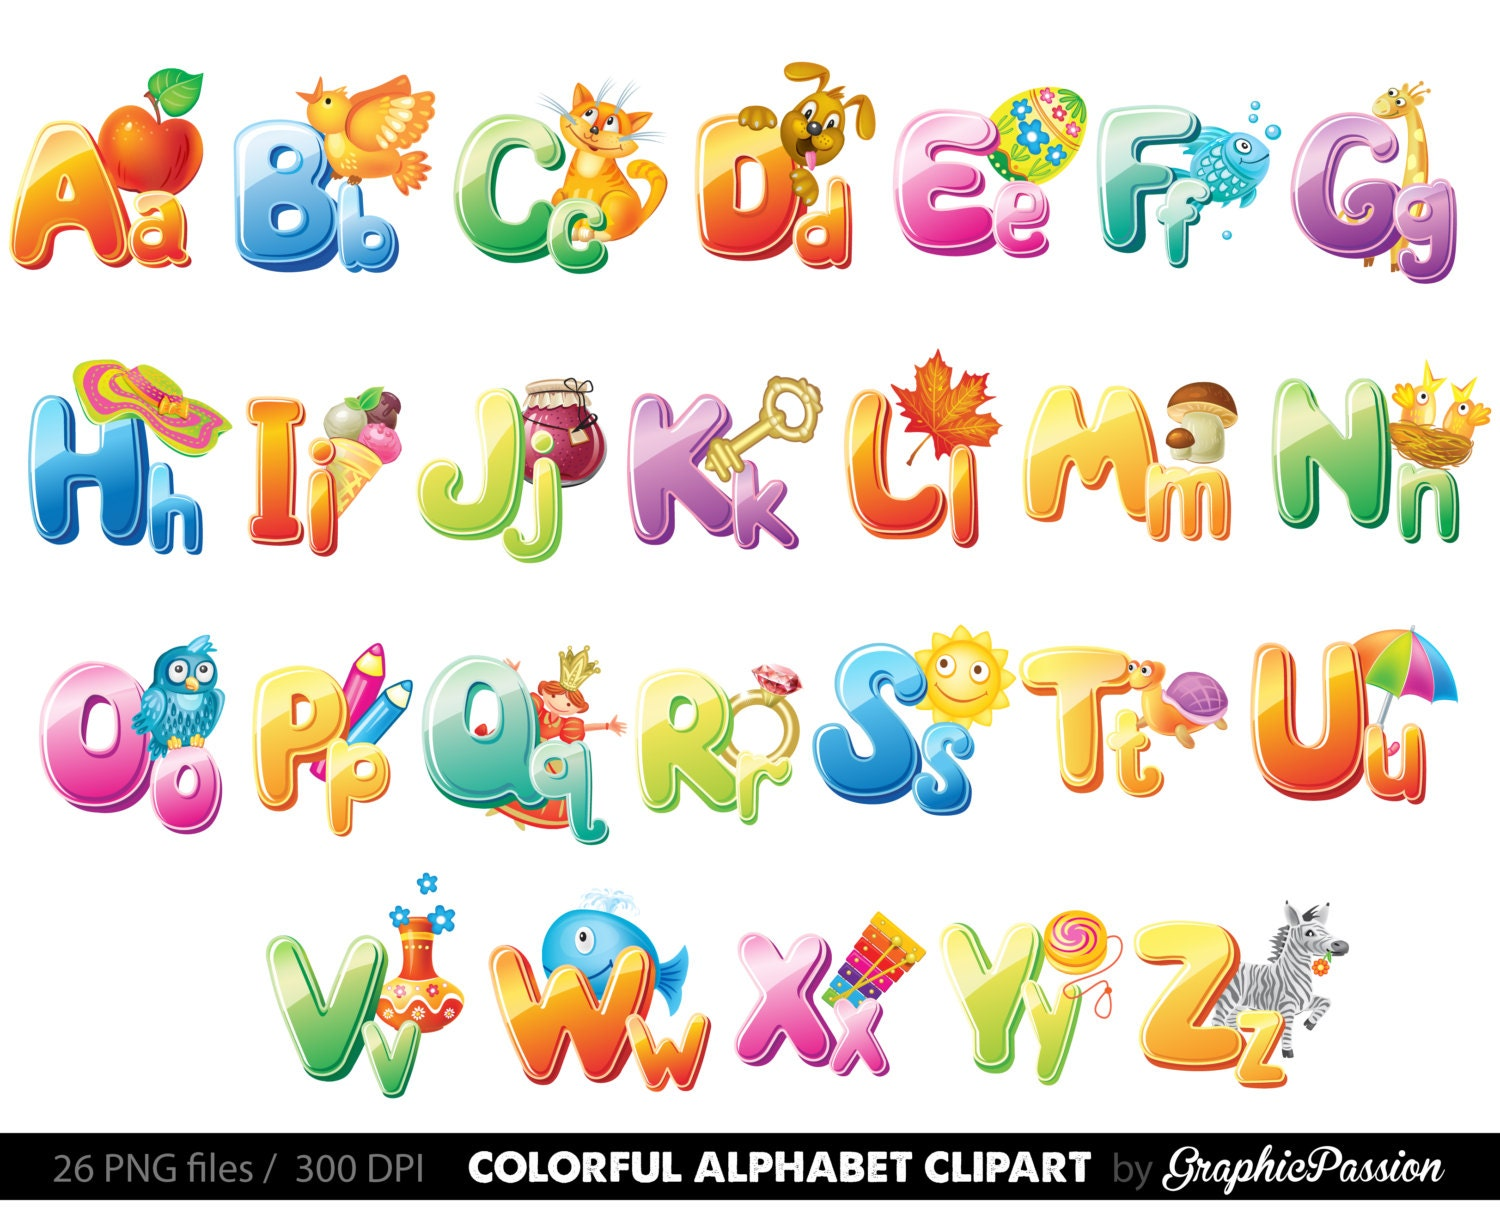 images clipart alphabet - photo #29